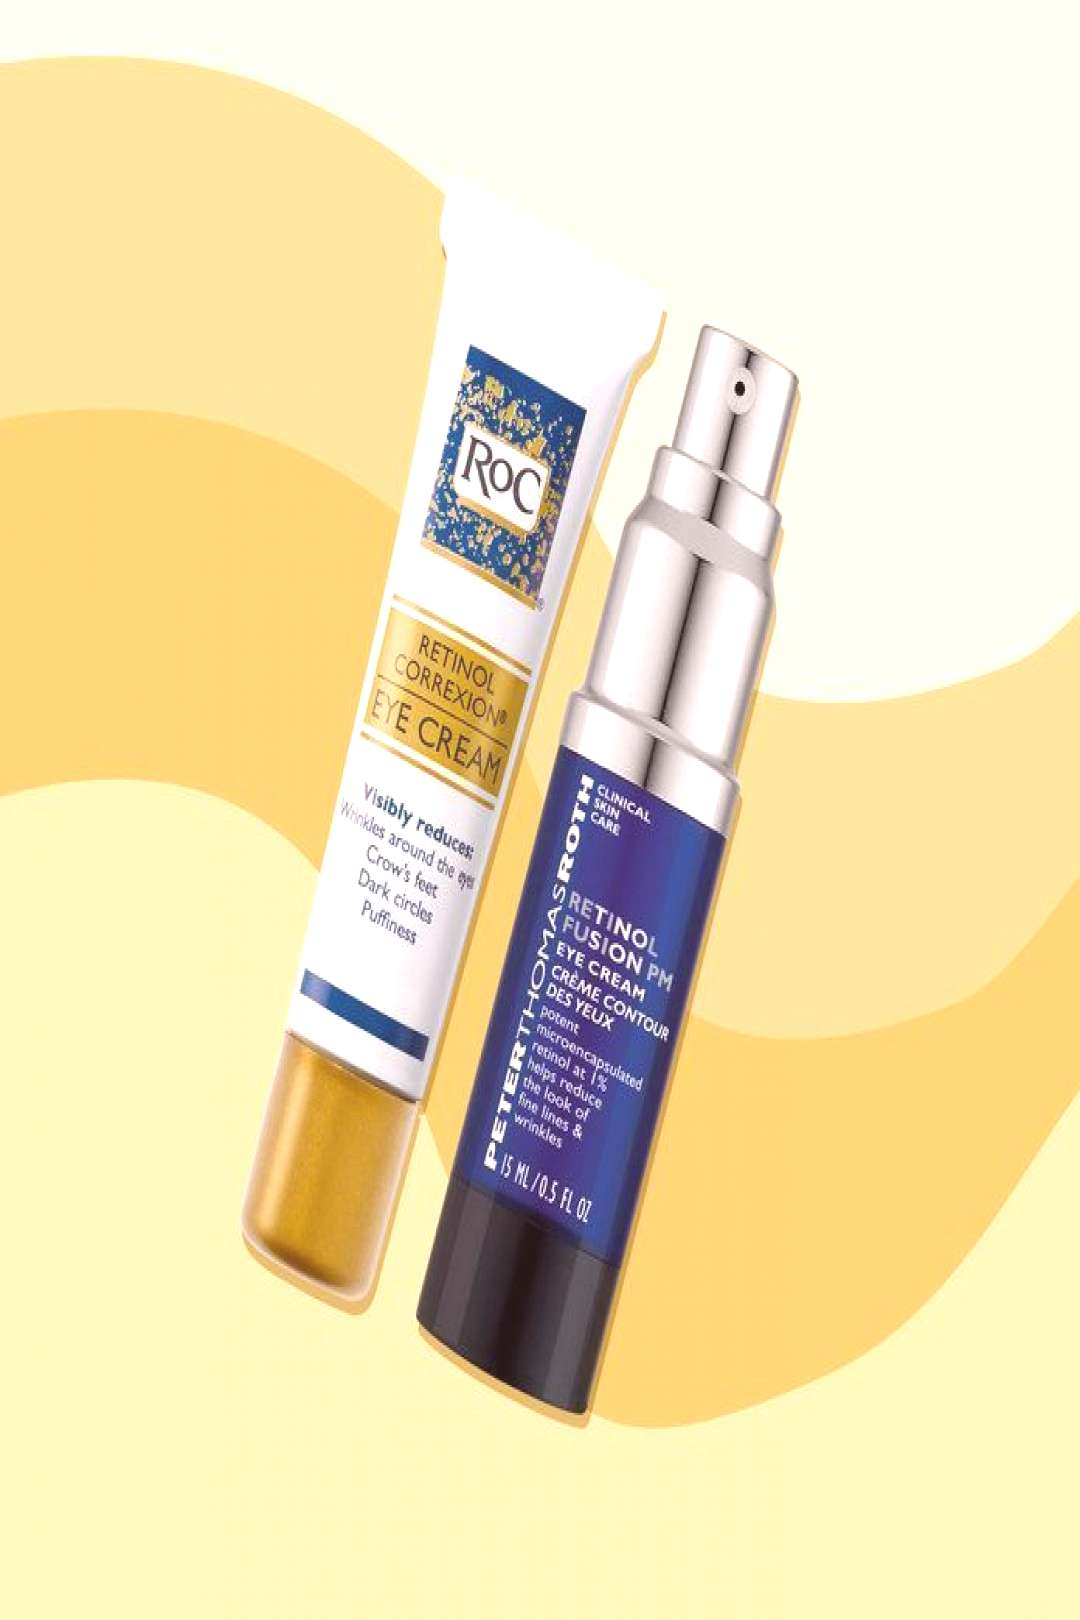 Creams For Fine Lines Best Retinol Eye Creams for Fine Lines and Wrinkles - Best Anti-Aging Eye Cre